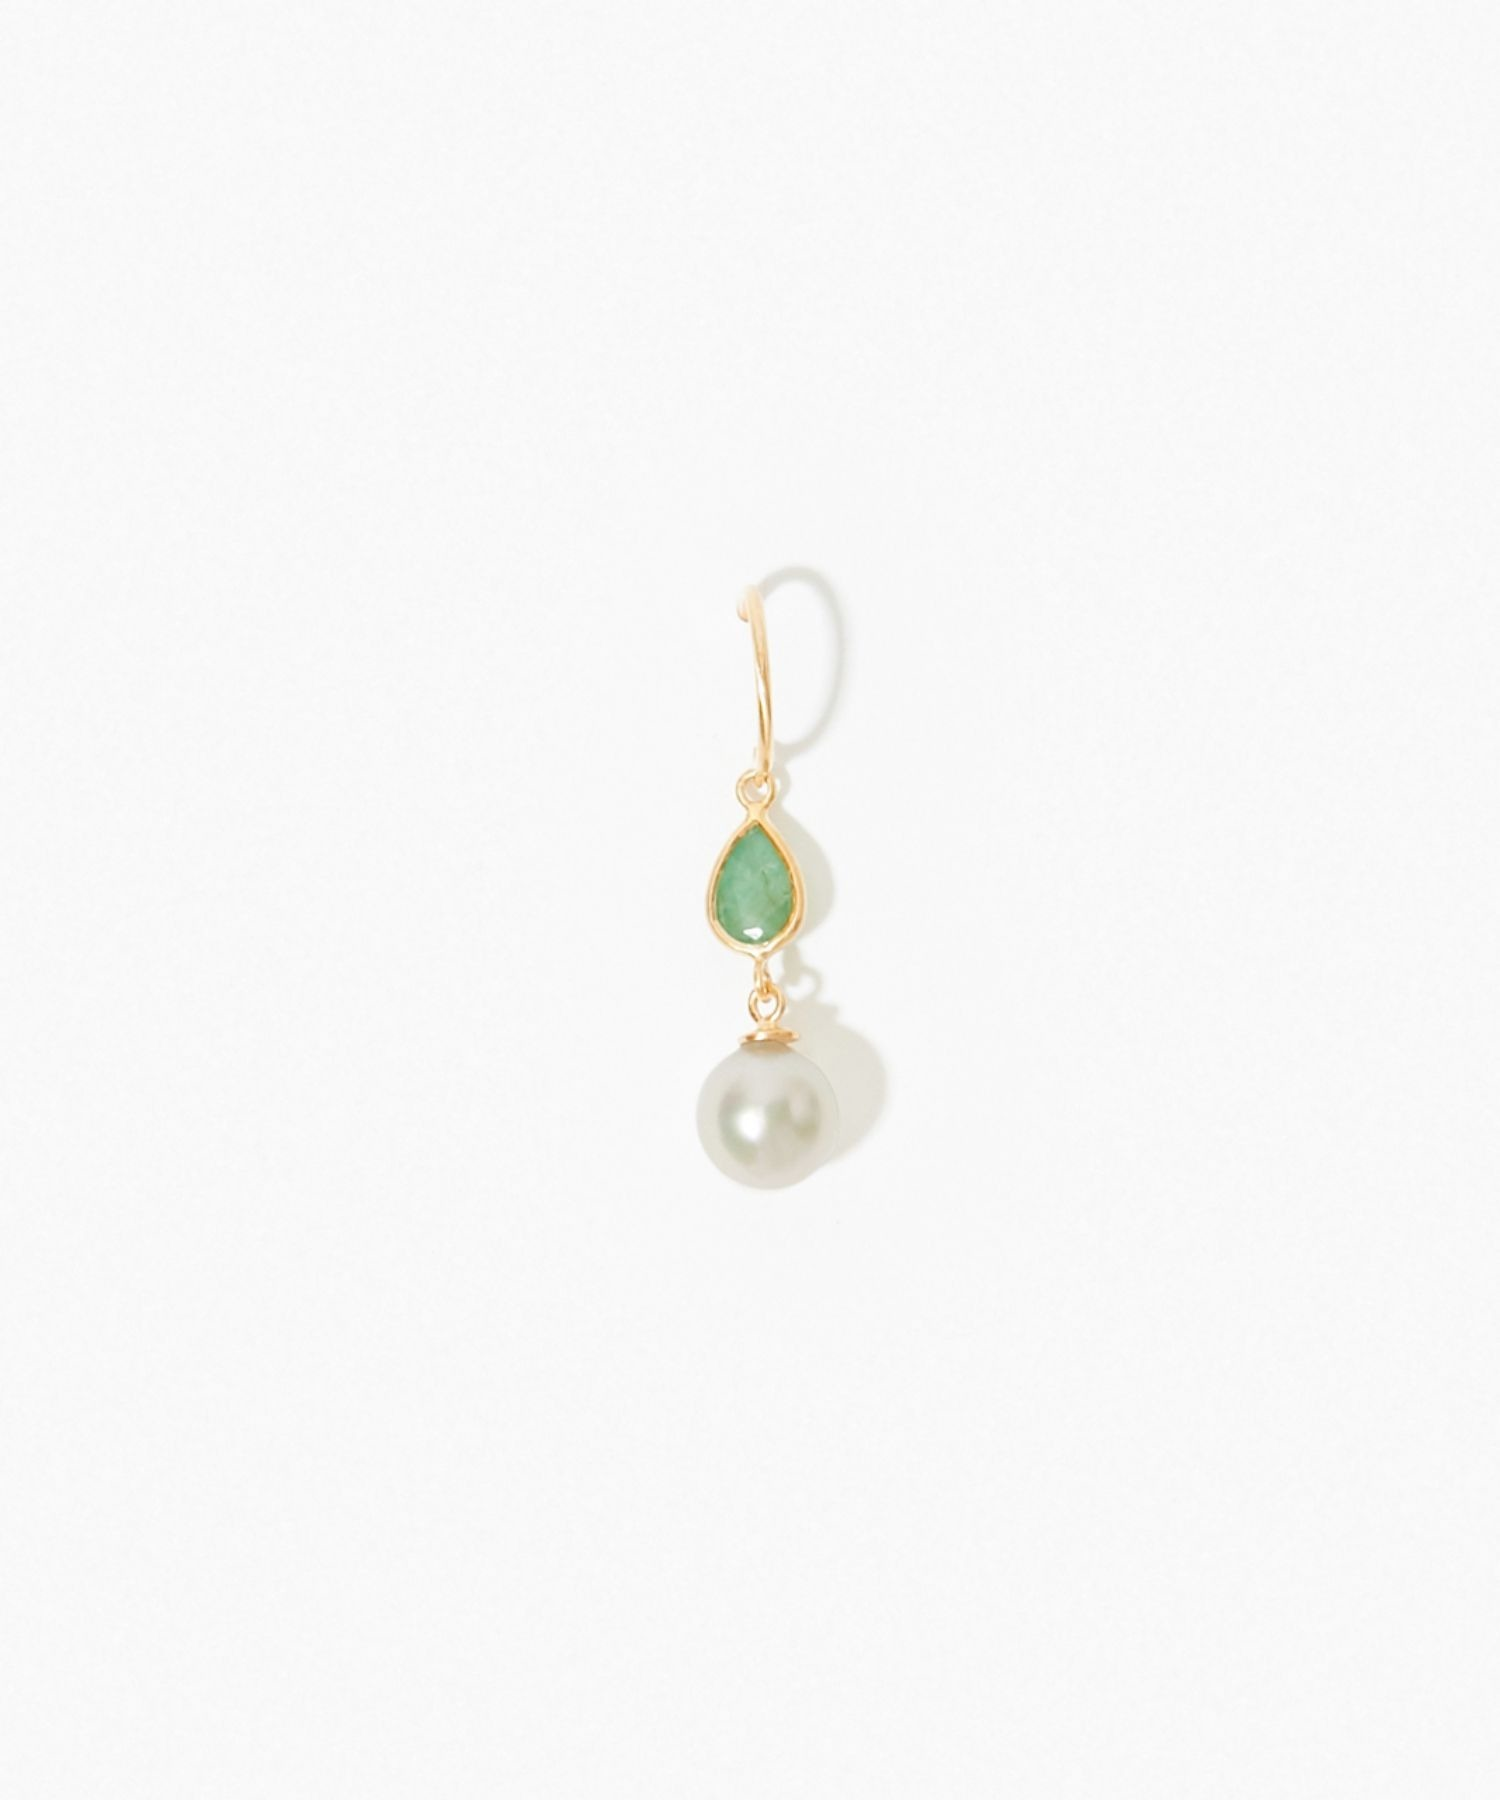 [philia] K10 akoya and pear-shaped emerald pierced earring